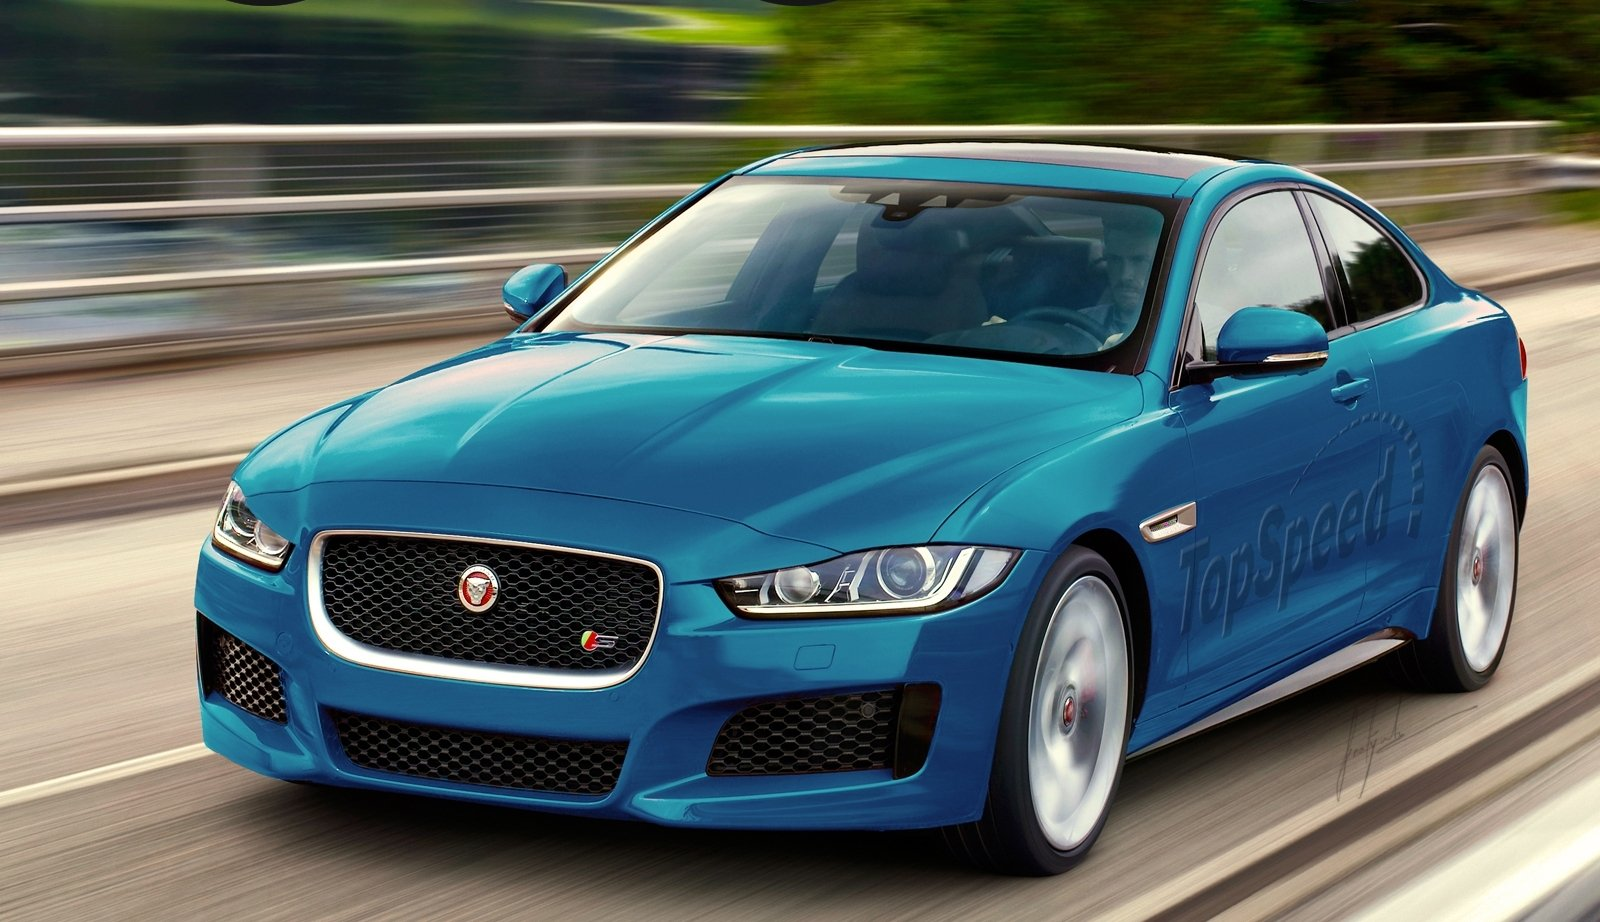 2017 jaguar xe coupe picture 568159 car review top speed. Black Bedroom Furniture Sets. Home Design Ideas